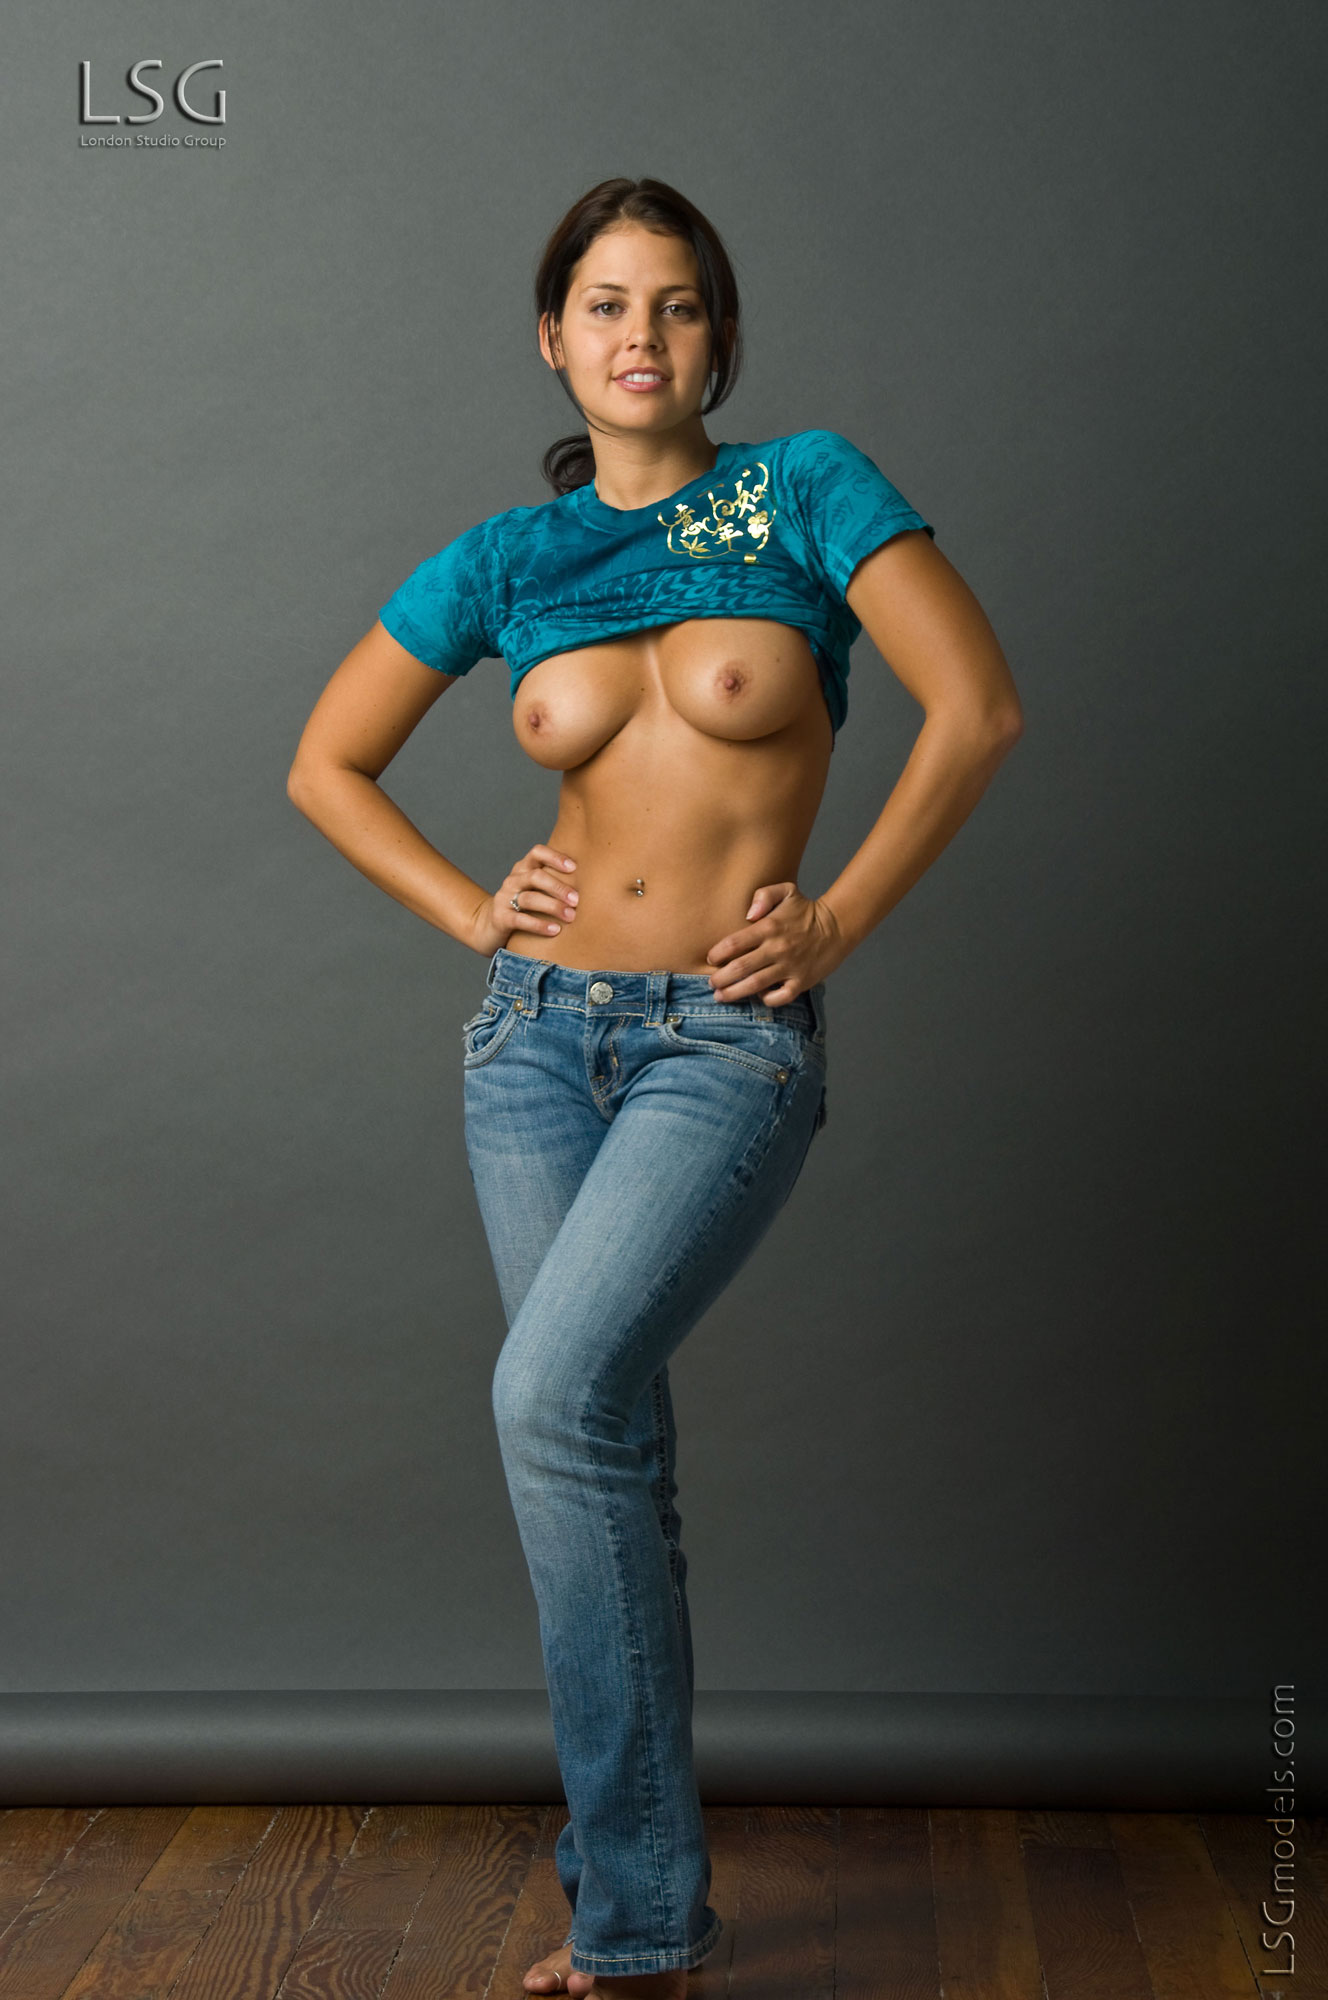 jeans pictures galleries Topless